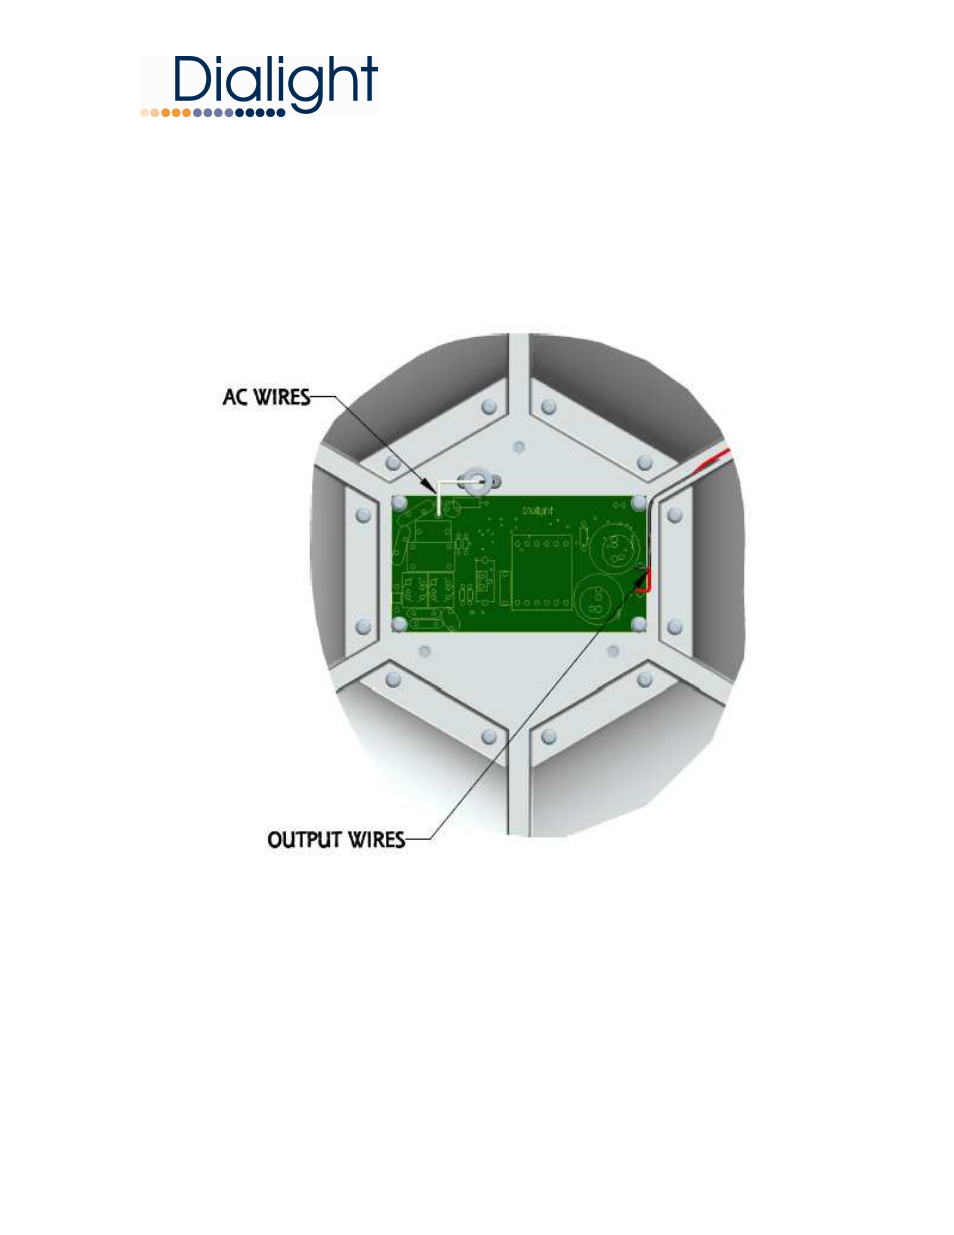 Dialight D564-A13-001 Vigilant L864 LED Based Red Medium Intensity Beacon  User Manual | Page 11 / 14